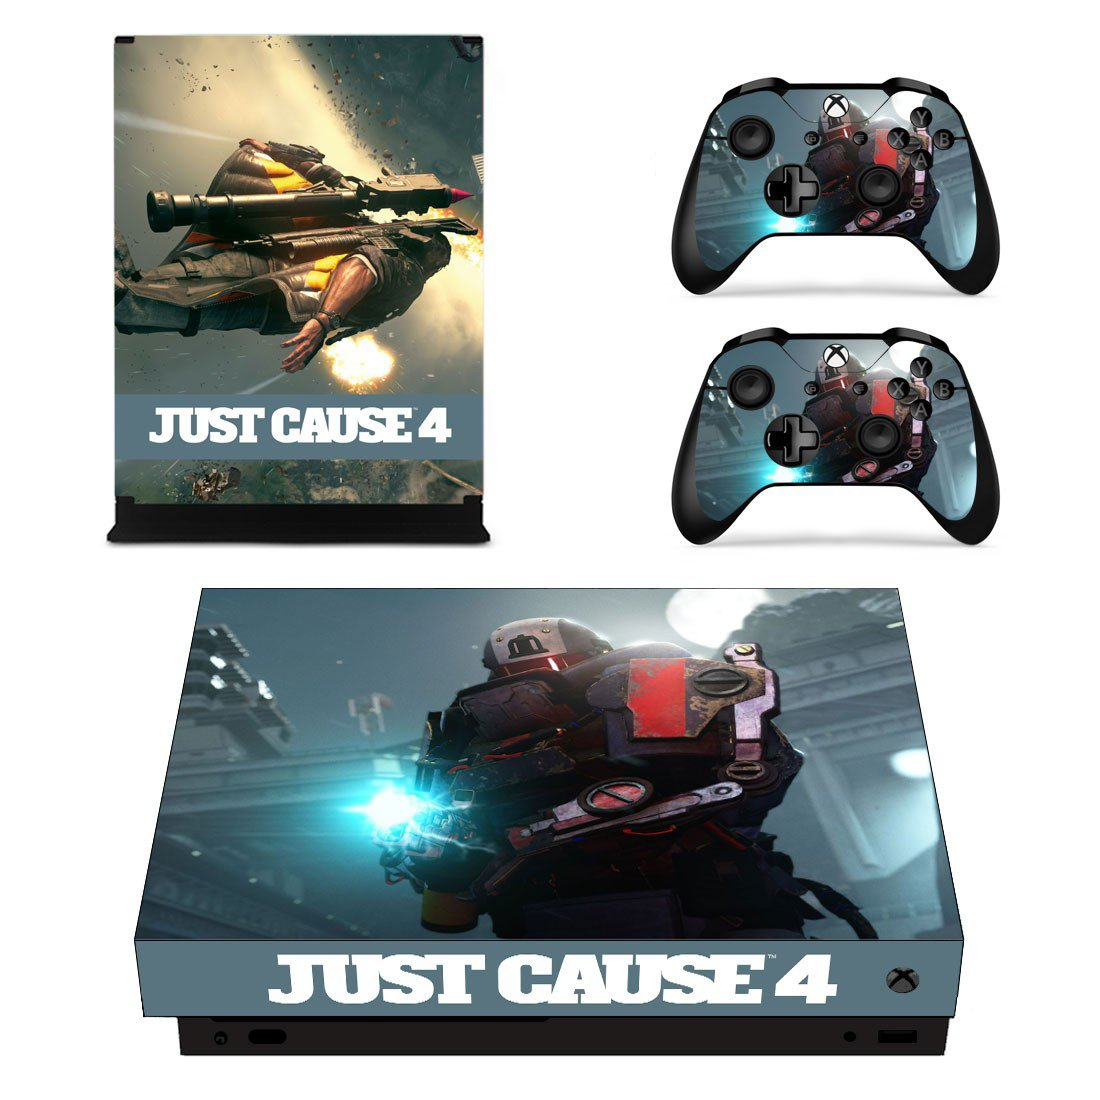 Just Cause 4 decal skin sticker for Xbox One X console and controllers